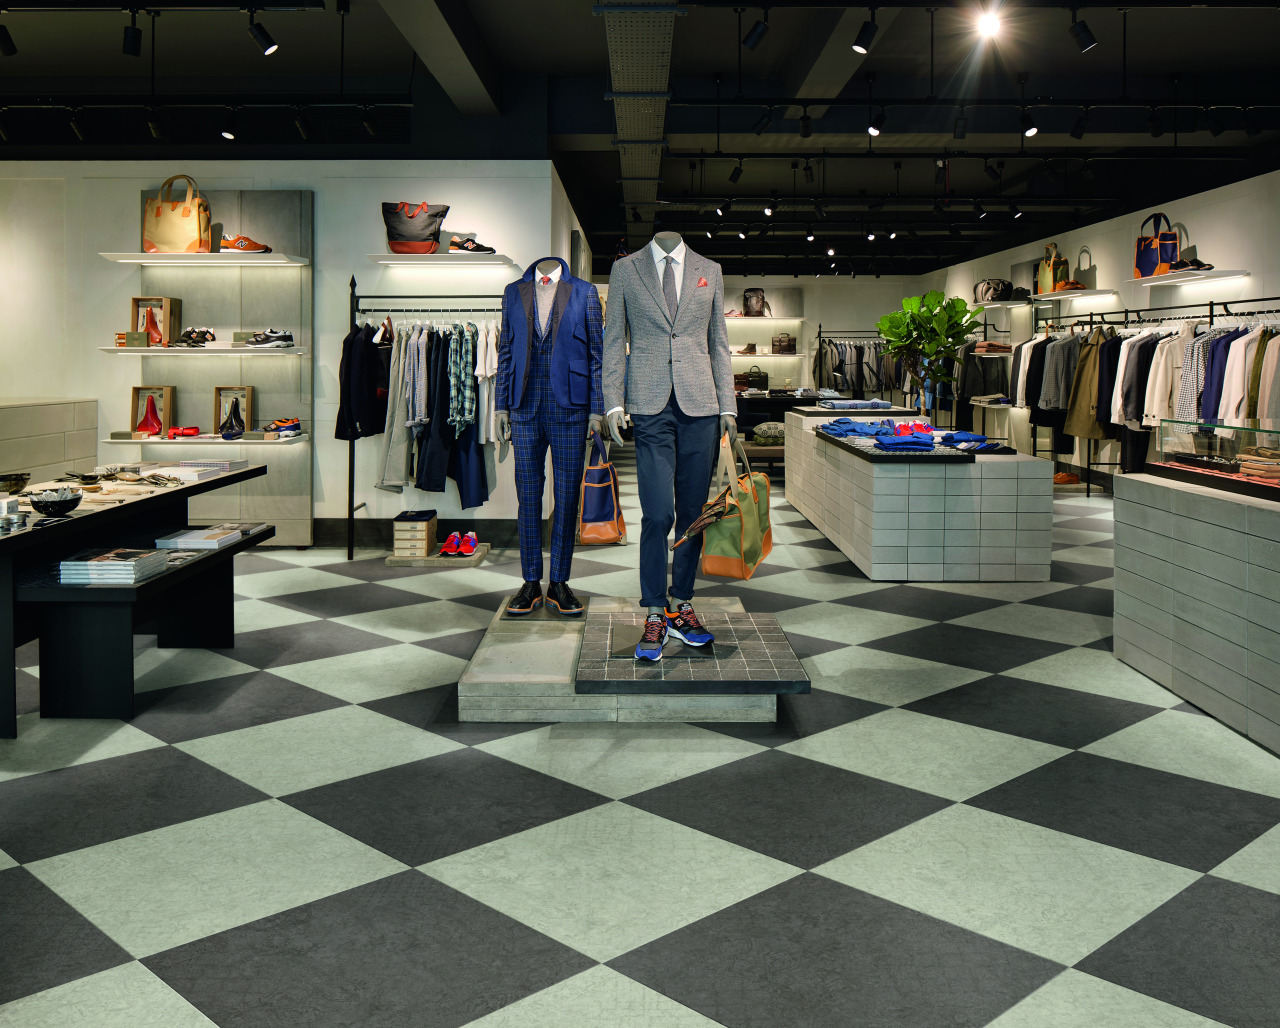 The biggest surface area in the room, retail boutique, floor, flooring, interior design, retail, black, gray